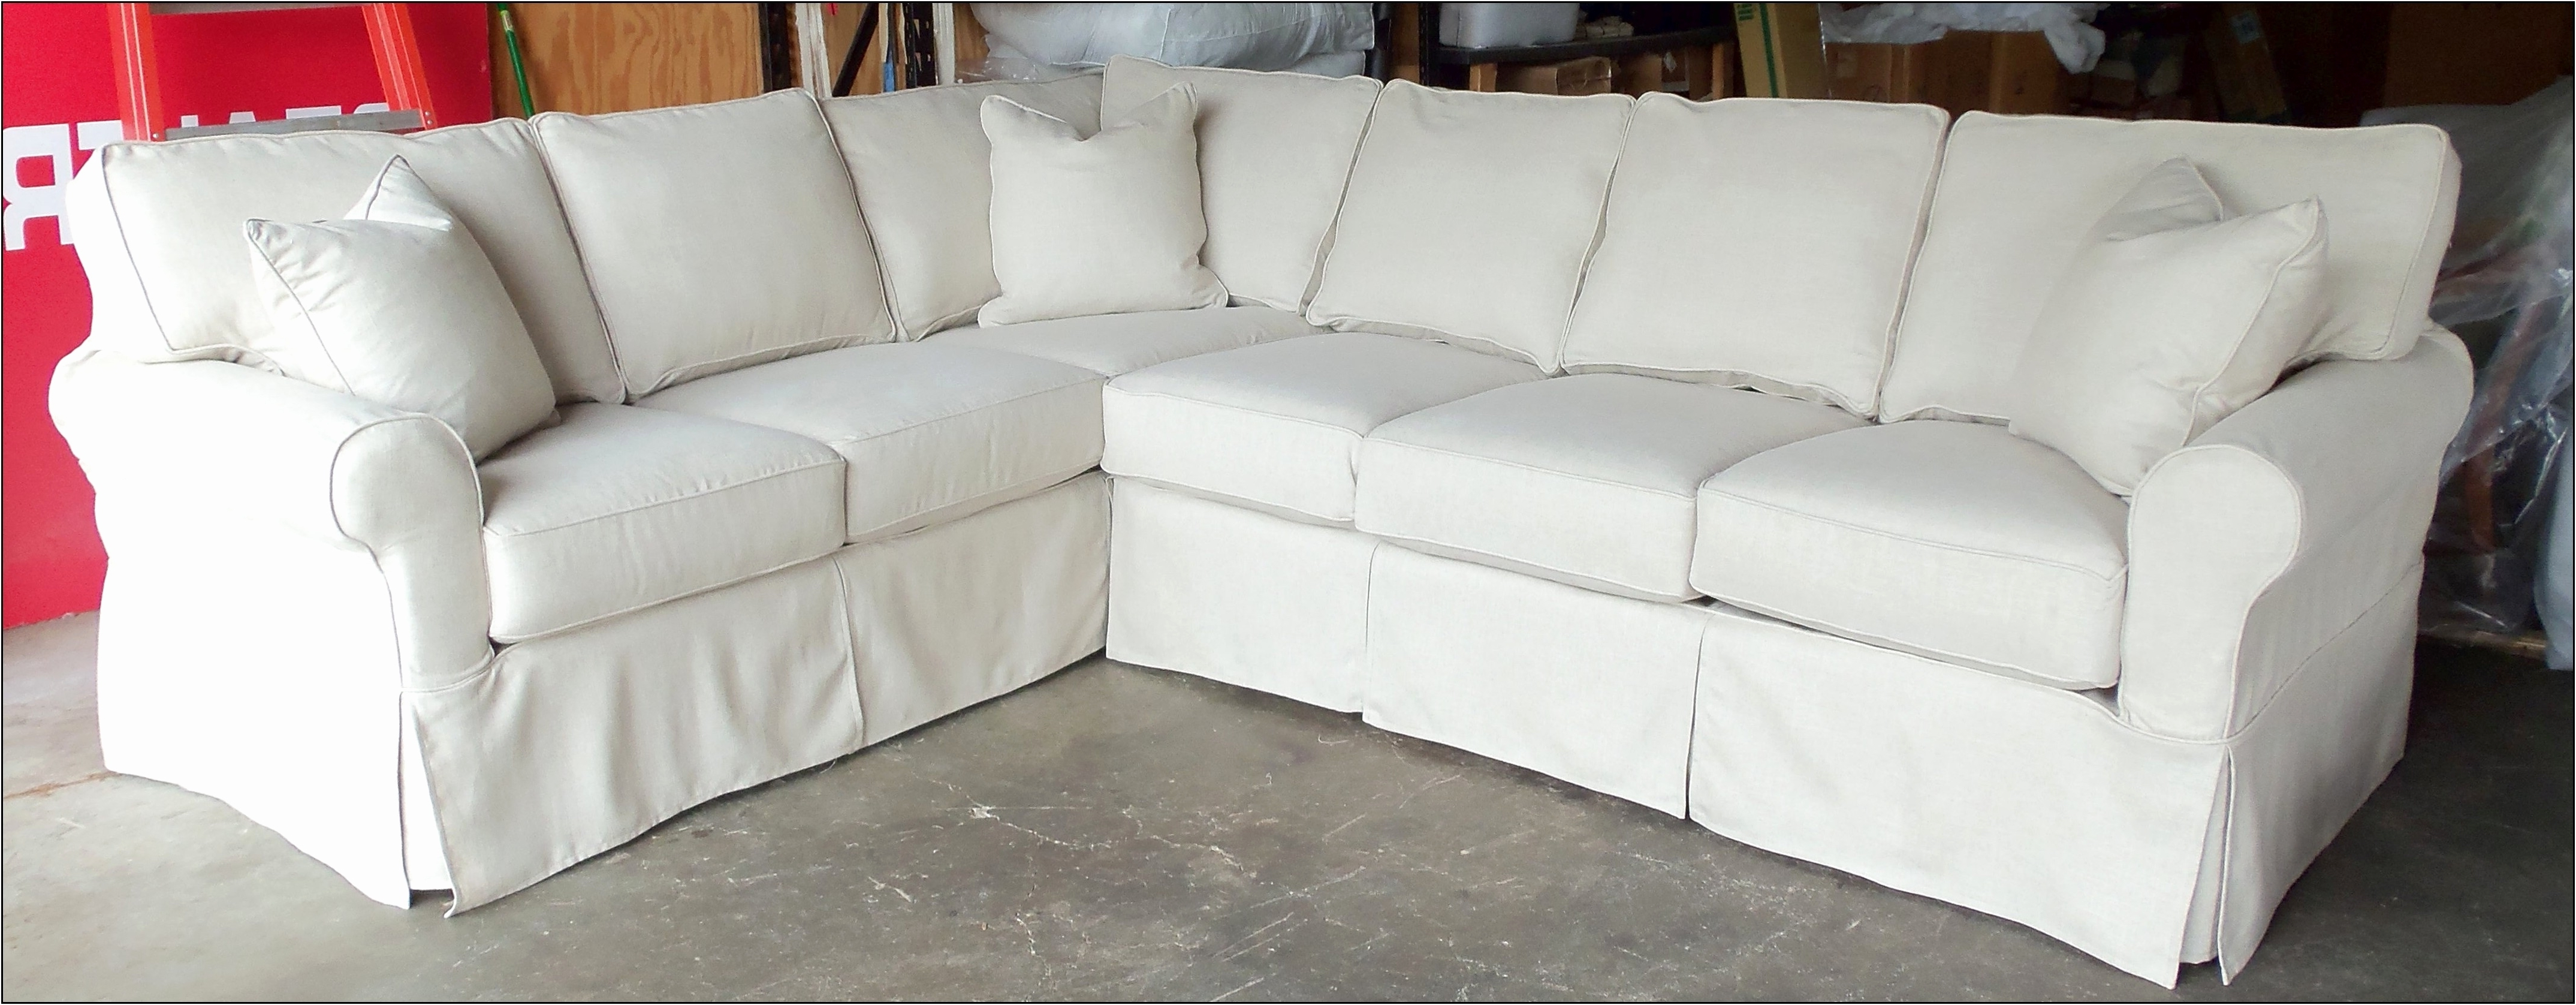 Well Known Best Slipcovers For Clayton Marcus Sofa 2018 – Couches And Sofas Ideas With Regard To Sectional Sofas At Birmingham Al (View 20 of 20)